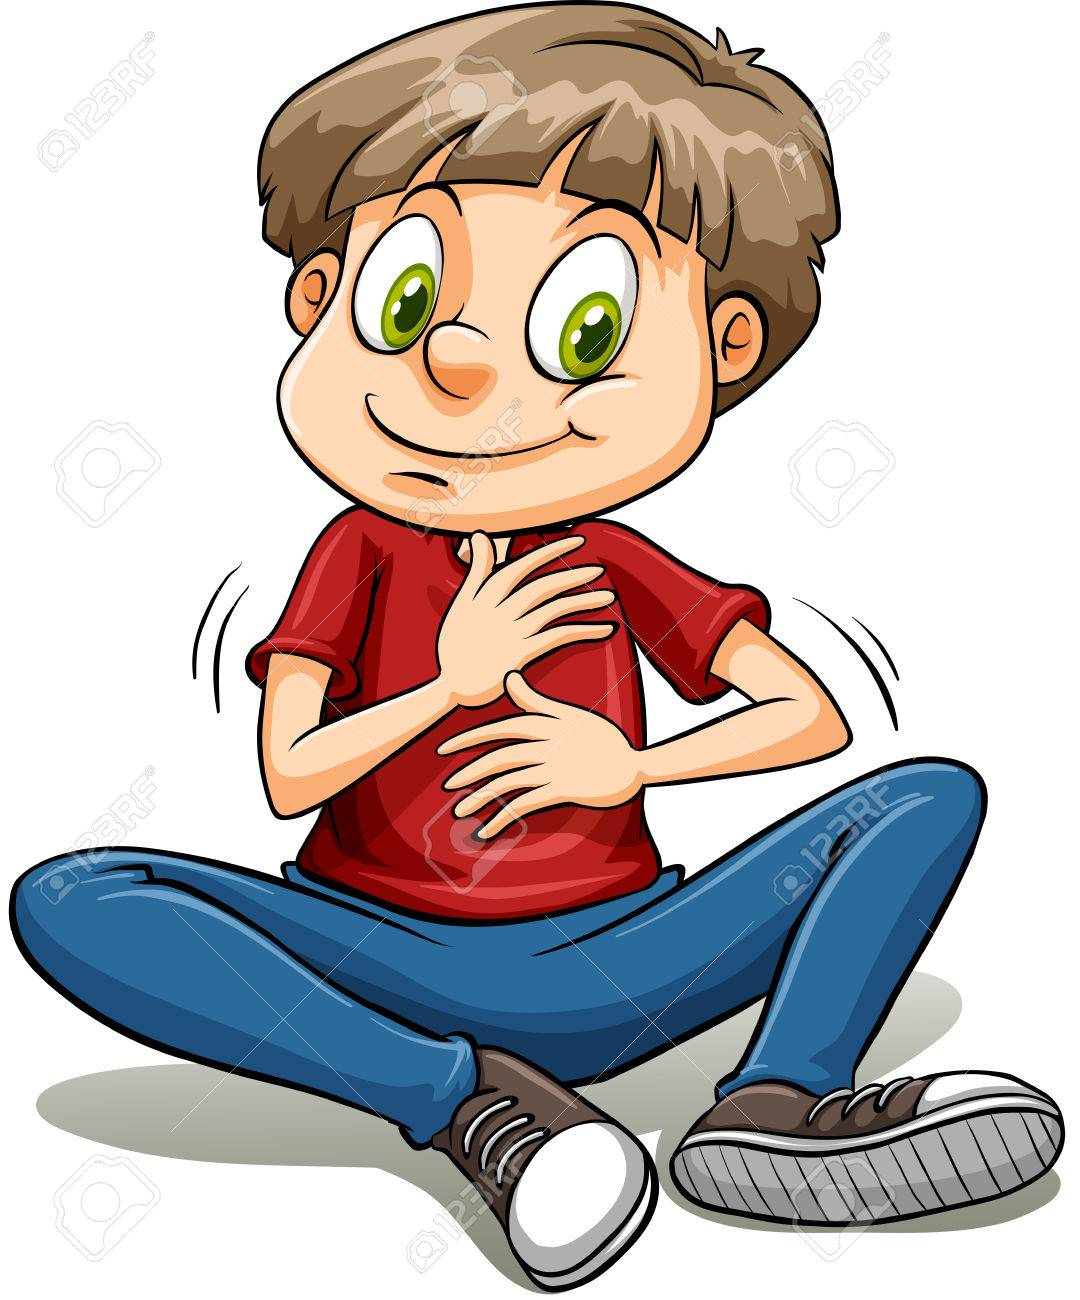 A boy with a golden heart idiom on a white background - 36780089